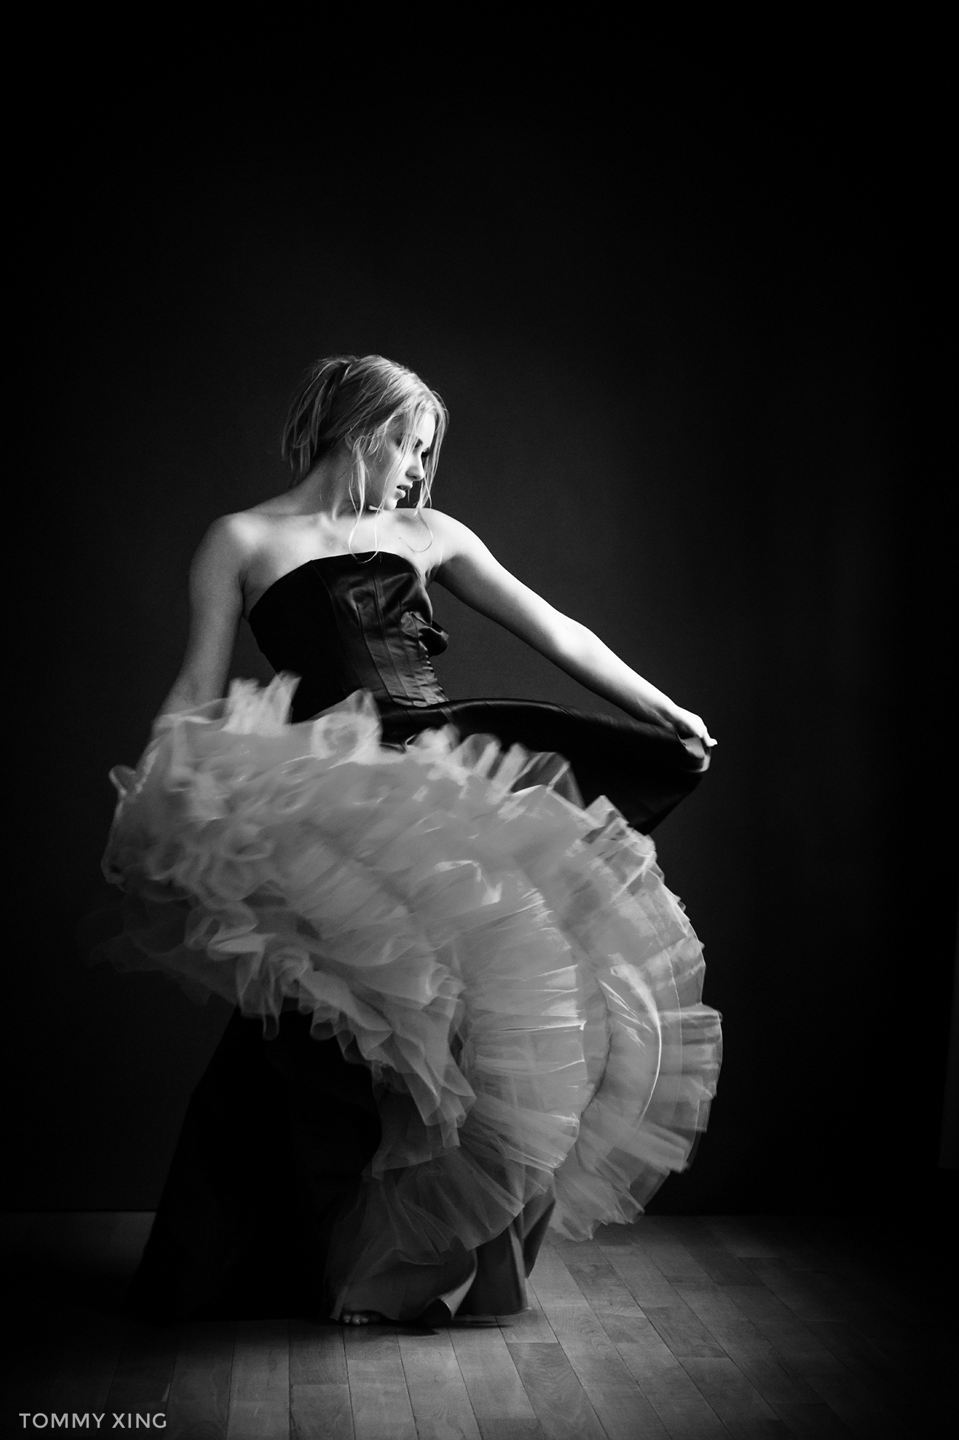 Los Angeles Dance photography - Haley - Tommy Xing17.JPG